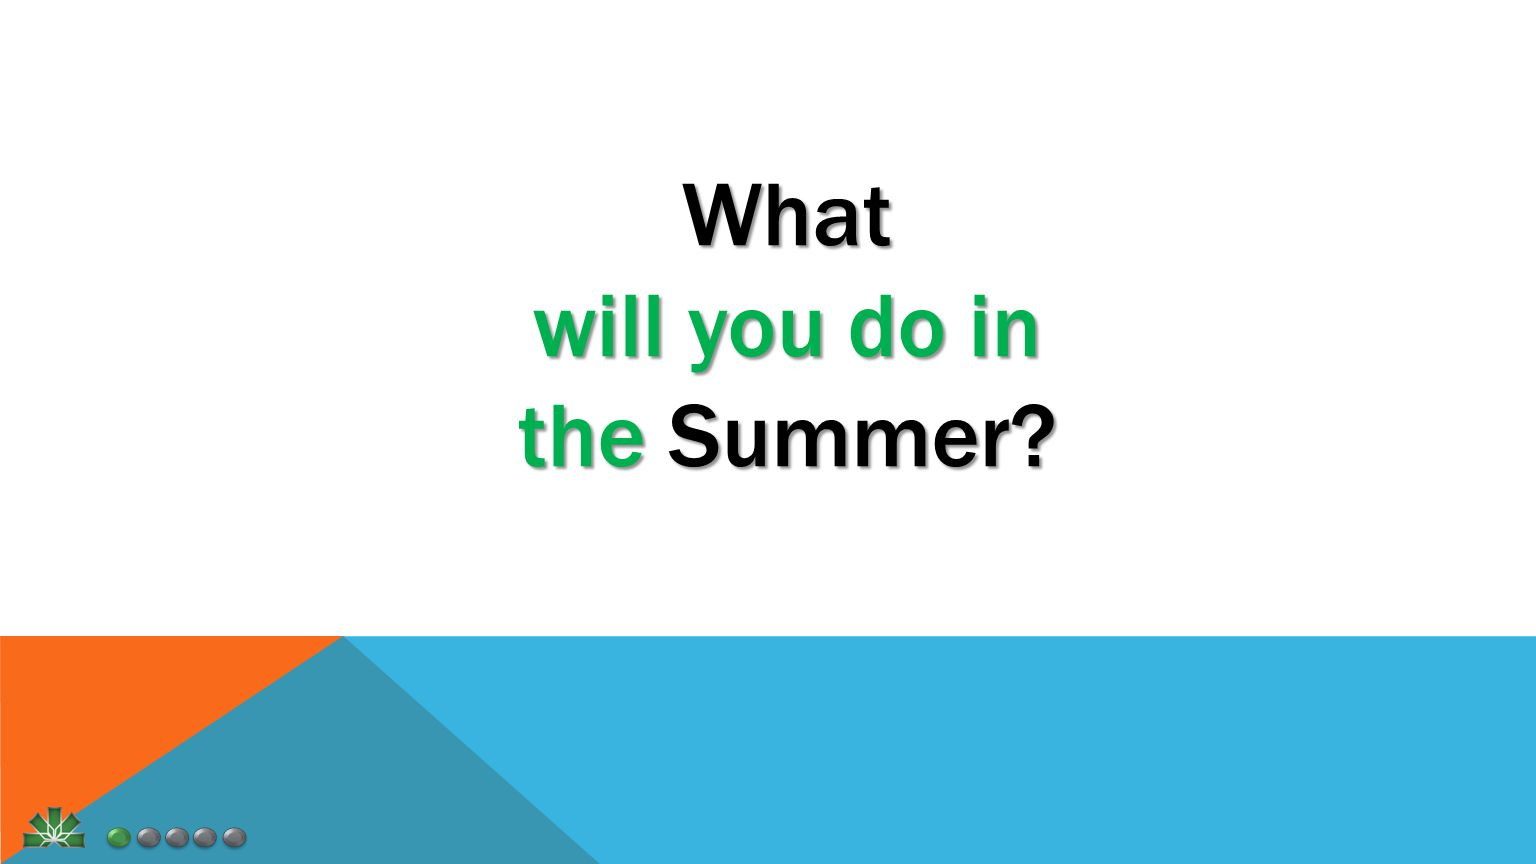 What will you do in the Summer?